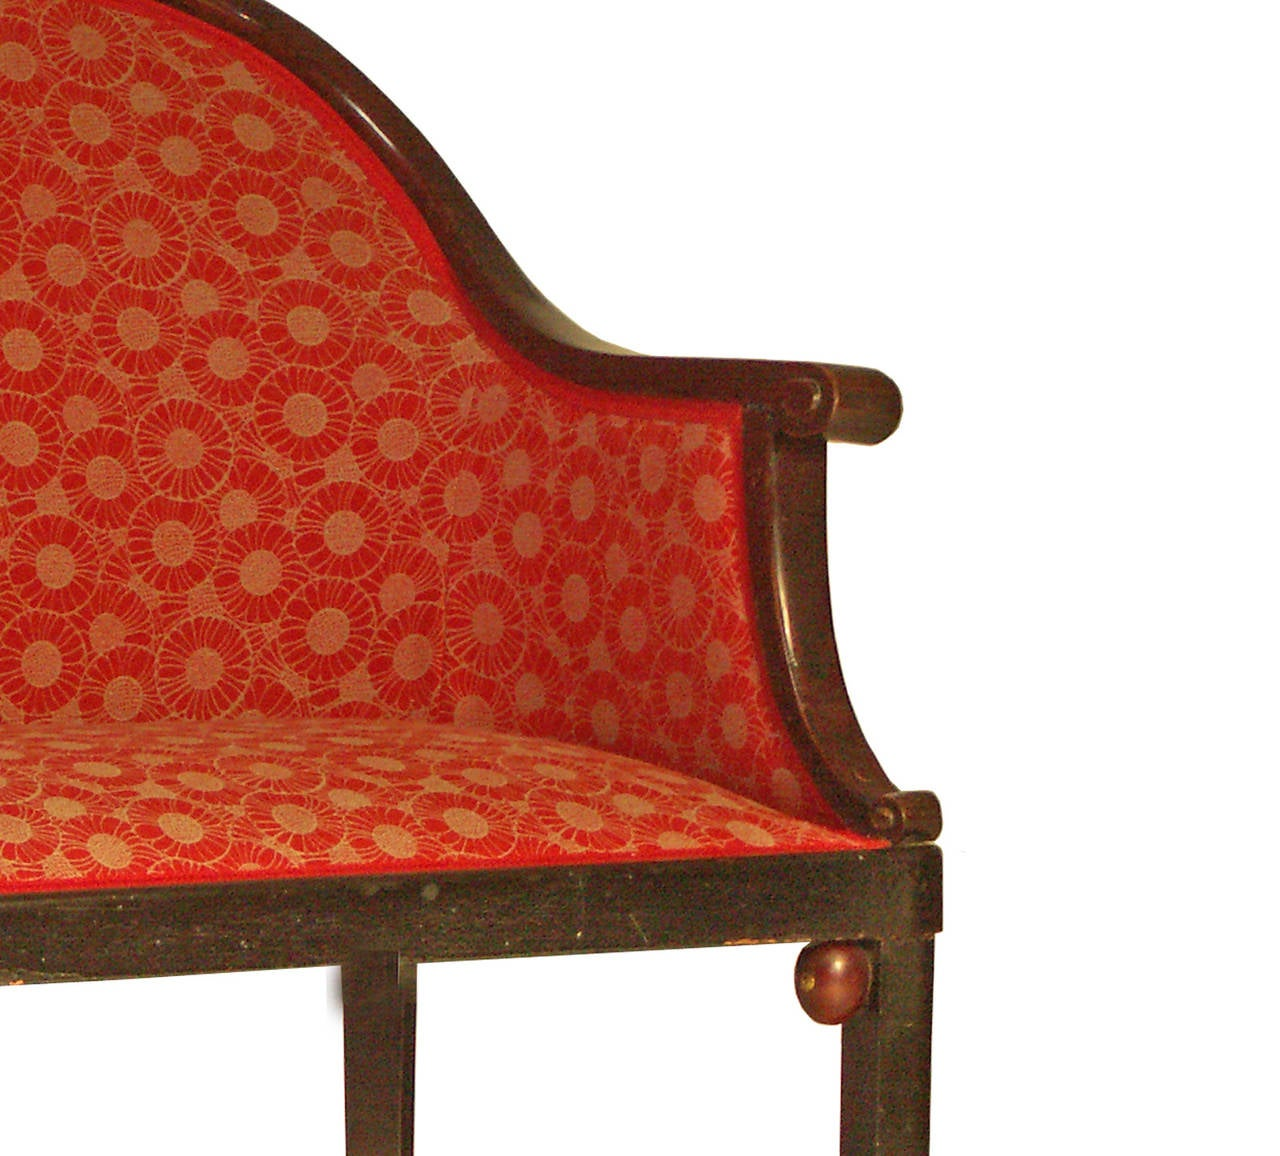 Austrian Original Josef Hoffmann Jugendstil early 20th Century Bench/Settee For Sale